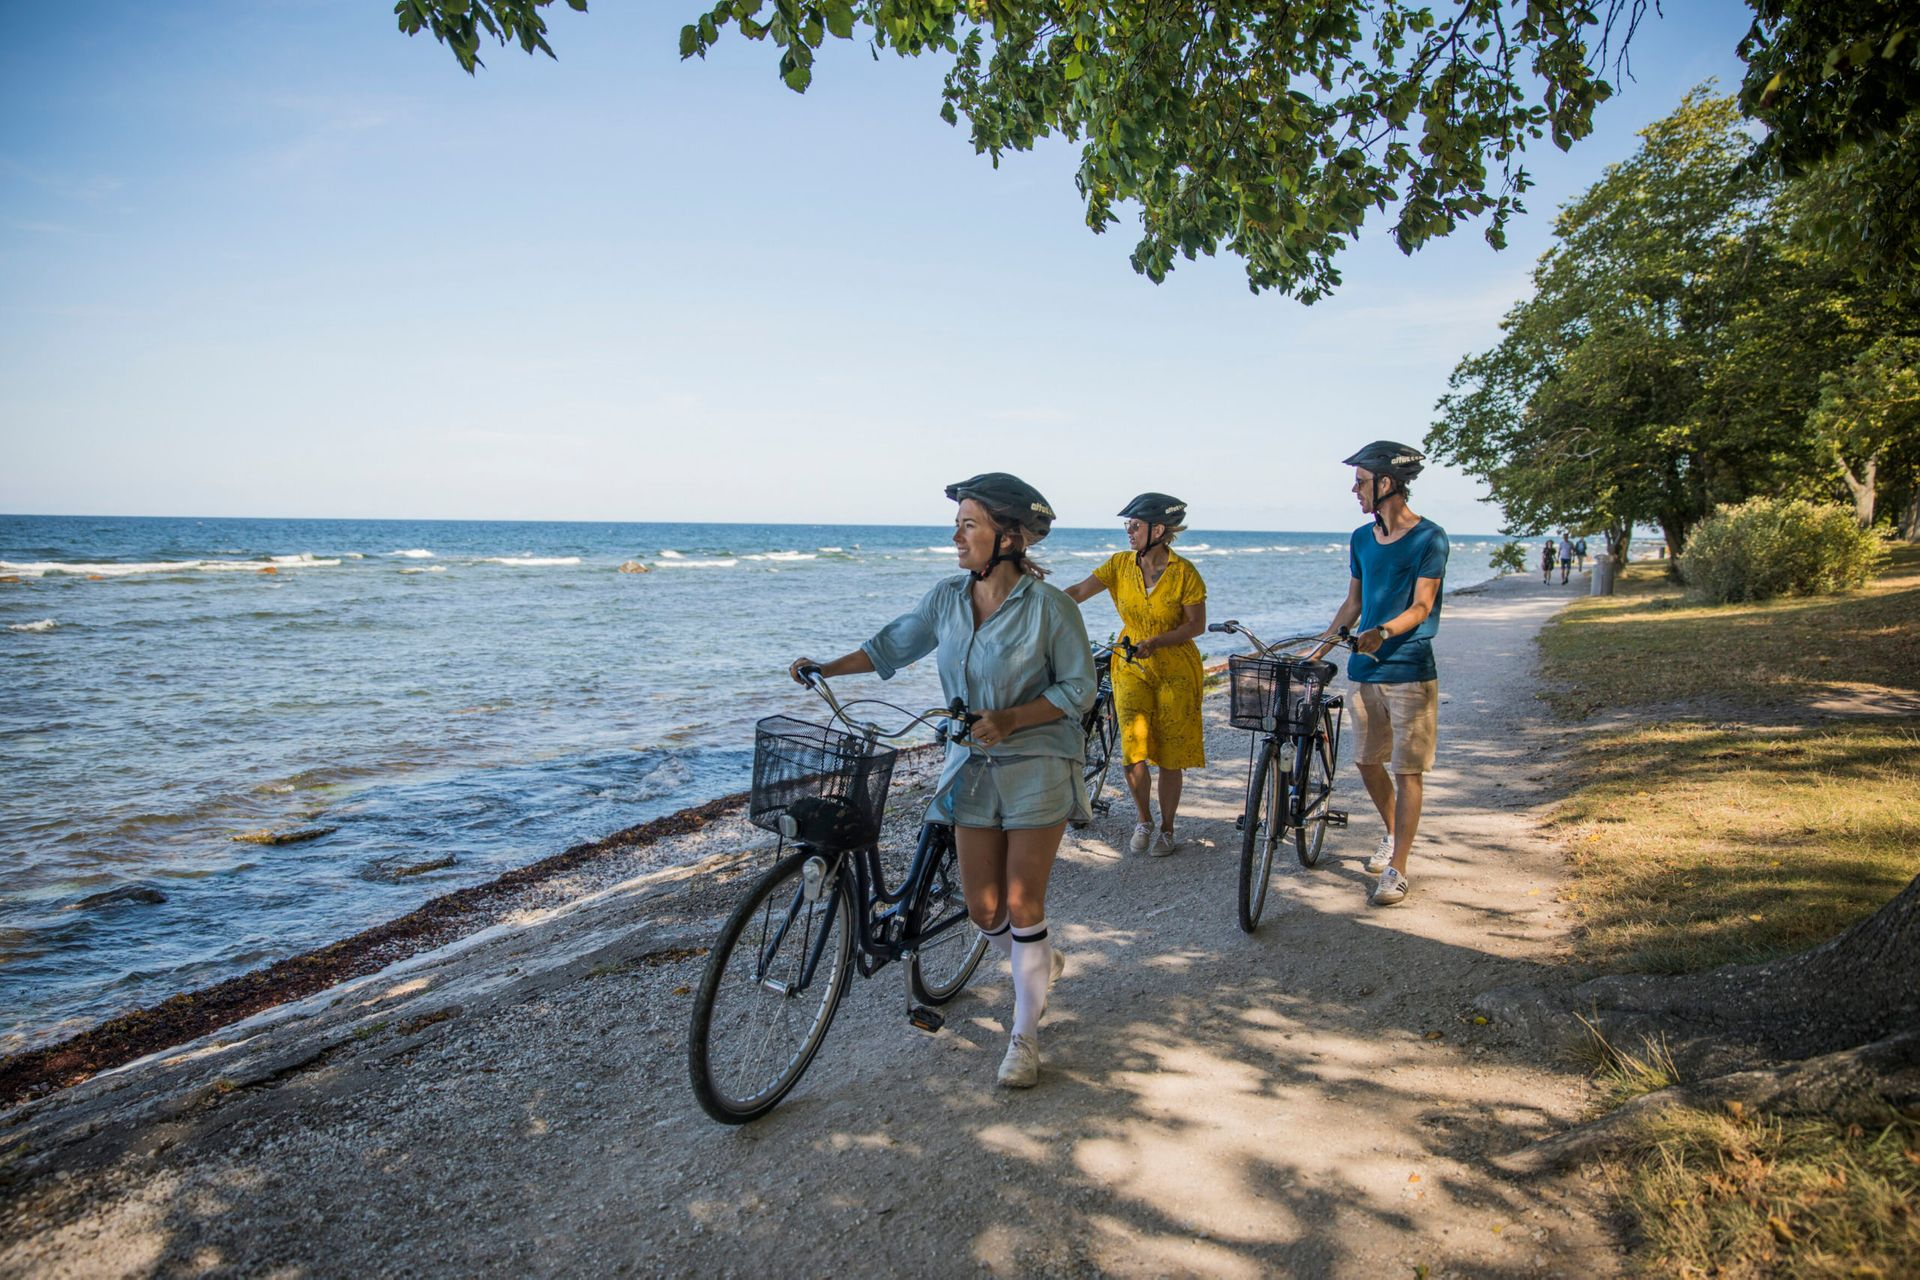 Three people walking along a beach on the island of Gotland with bikes during the summer.